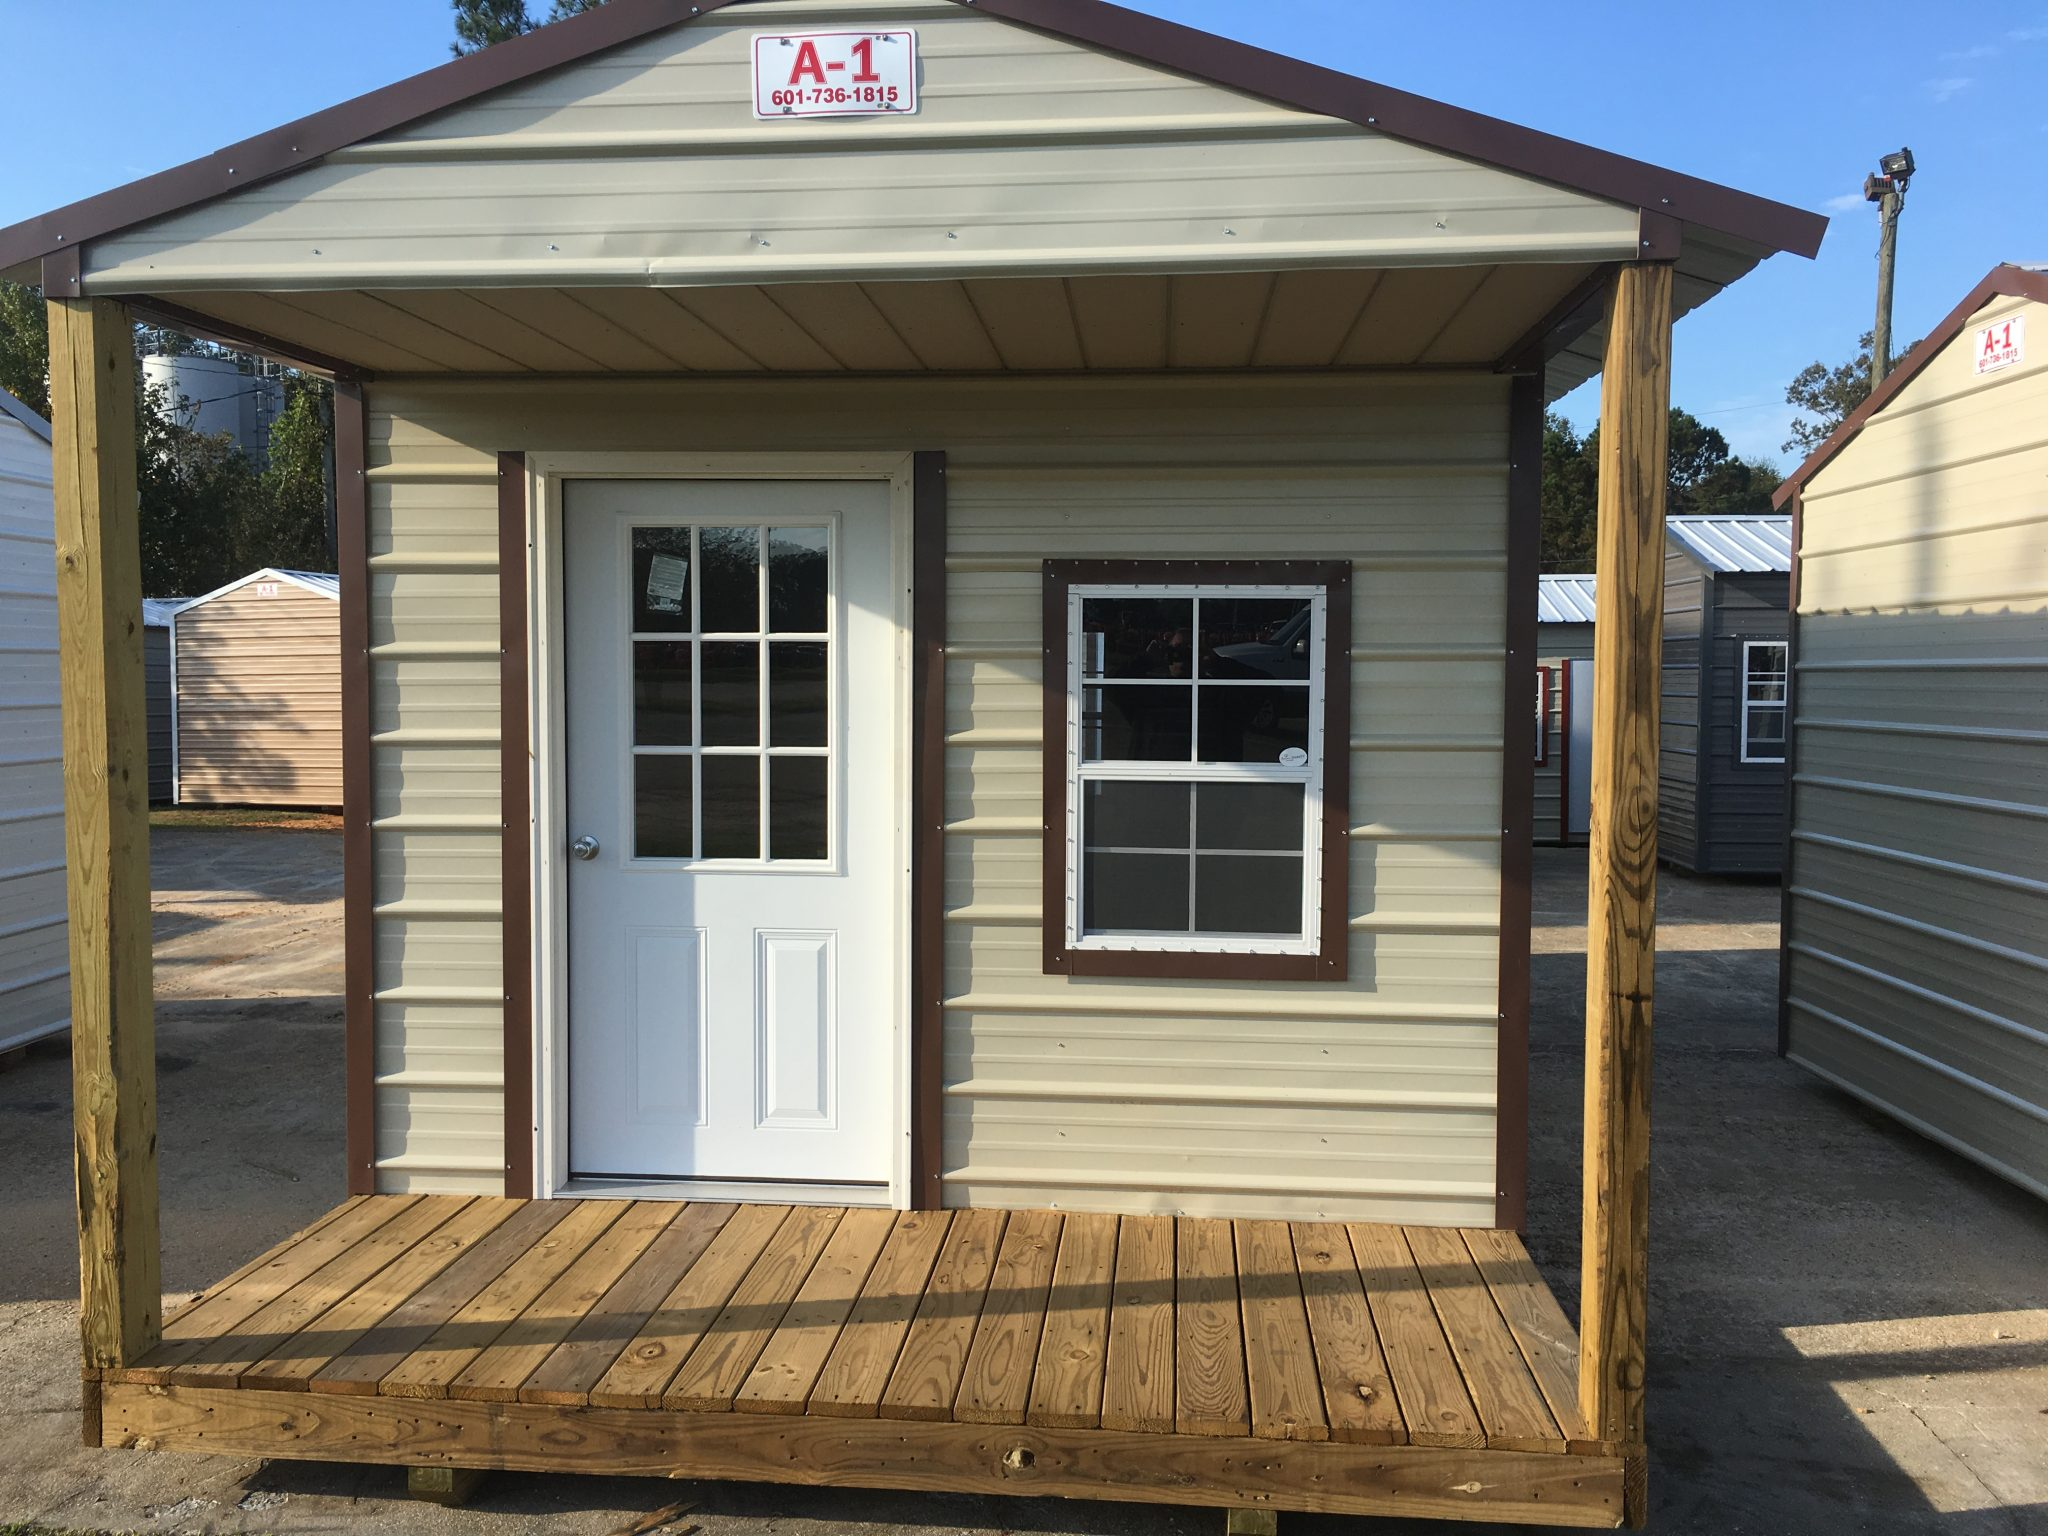 Sheds - Portable Storage Buildings | Hattiesburg, Columbia ...